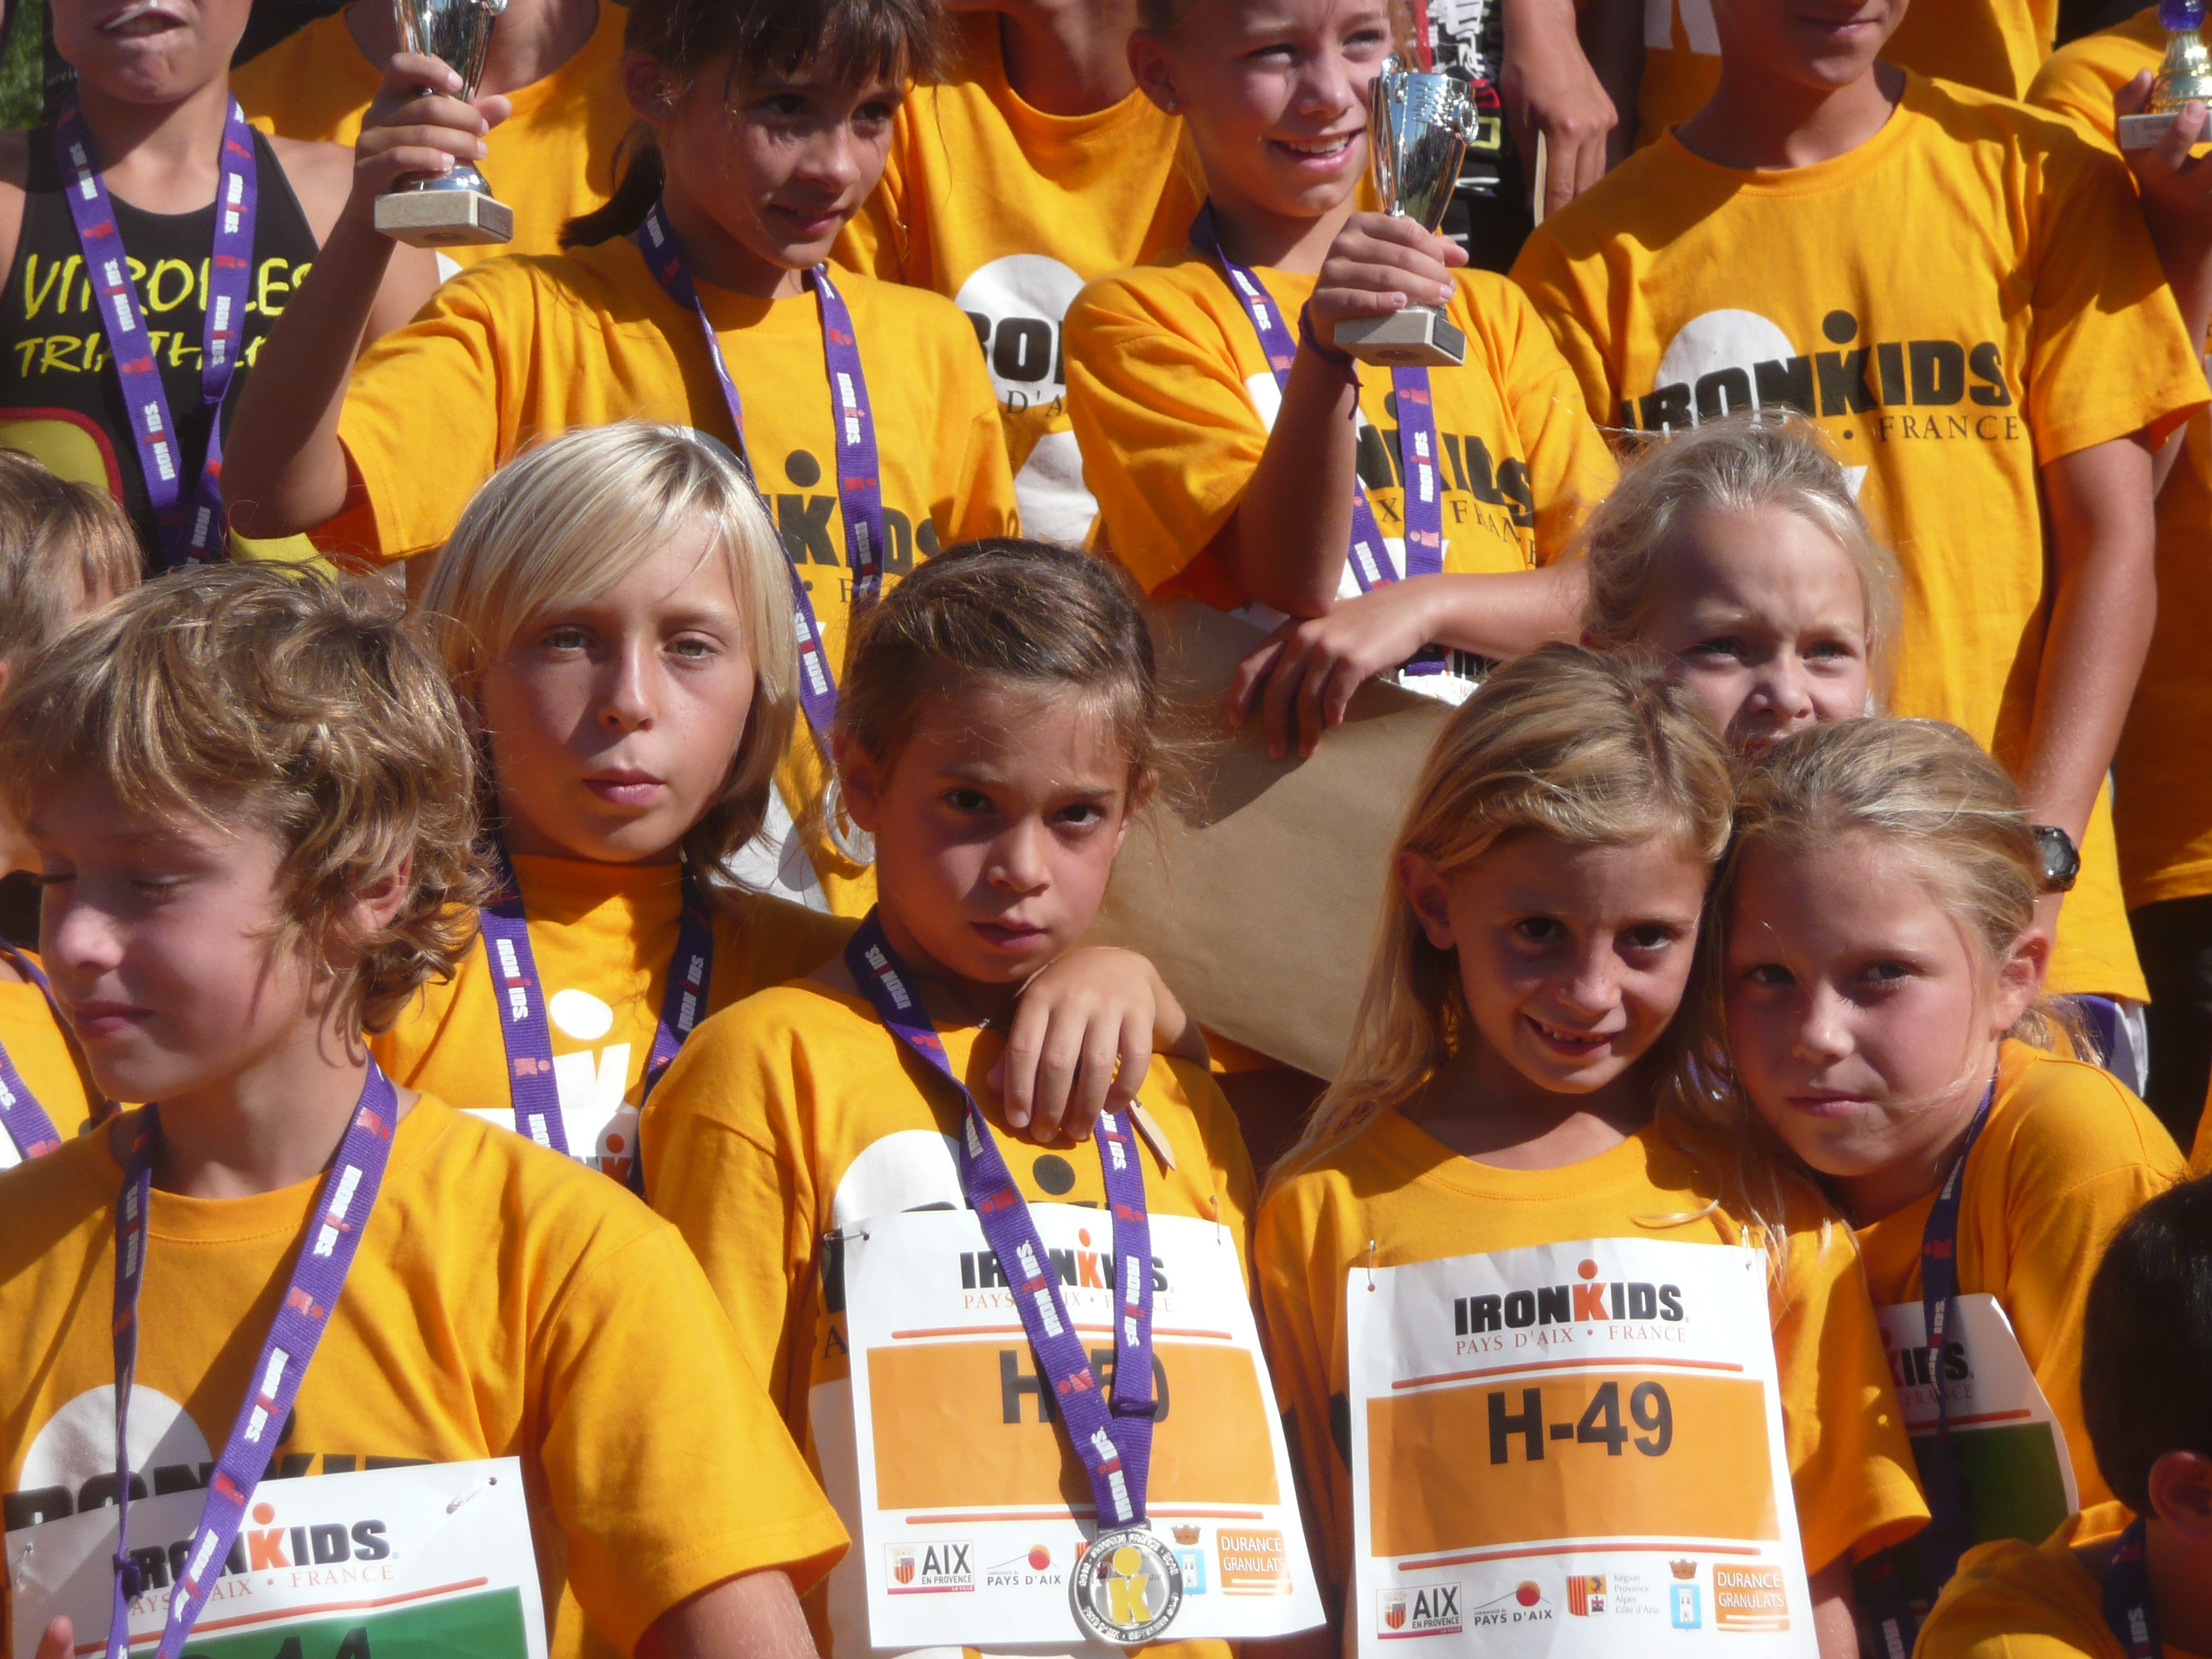 Ironkids, Irongirl du Pays d'Aix : Le Point rose en point de mire !